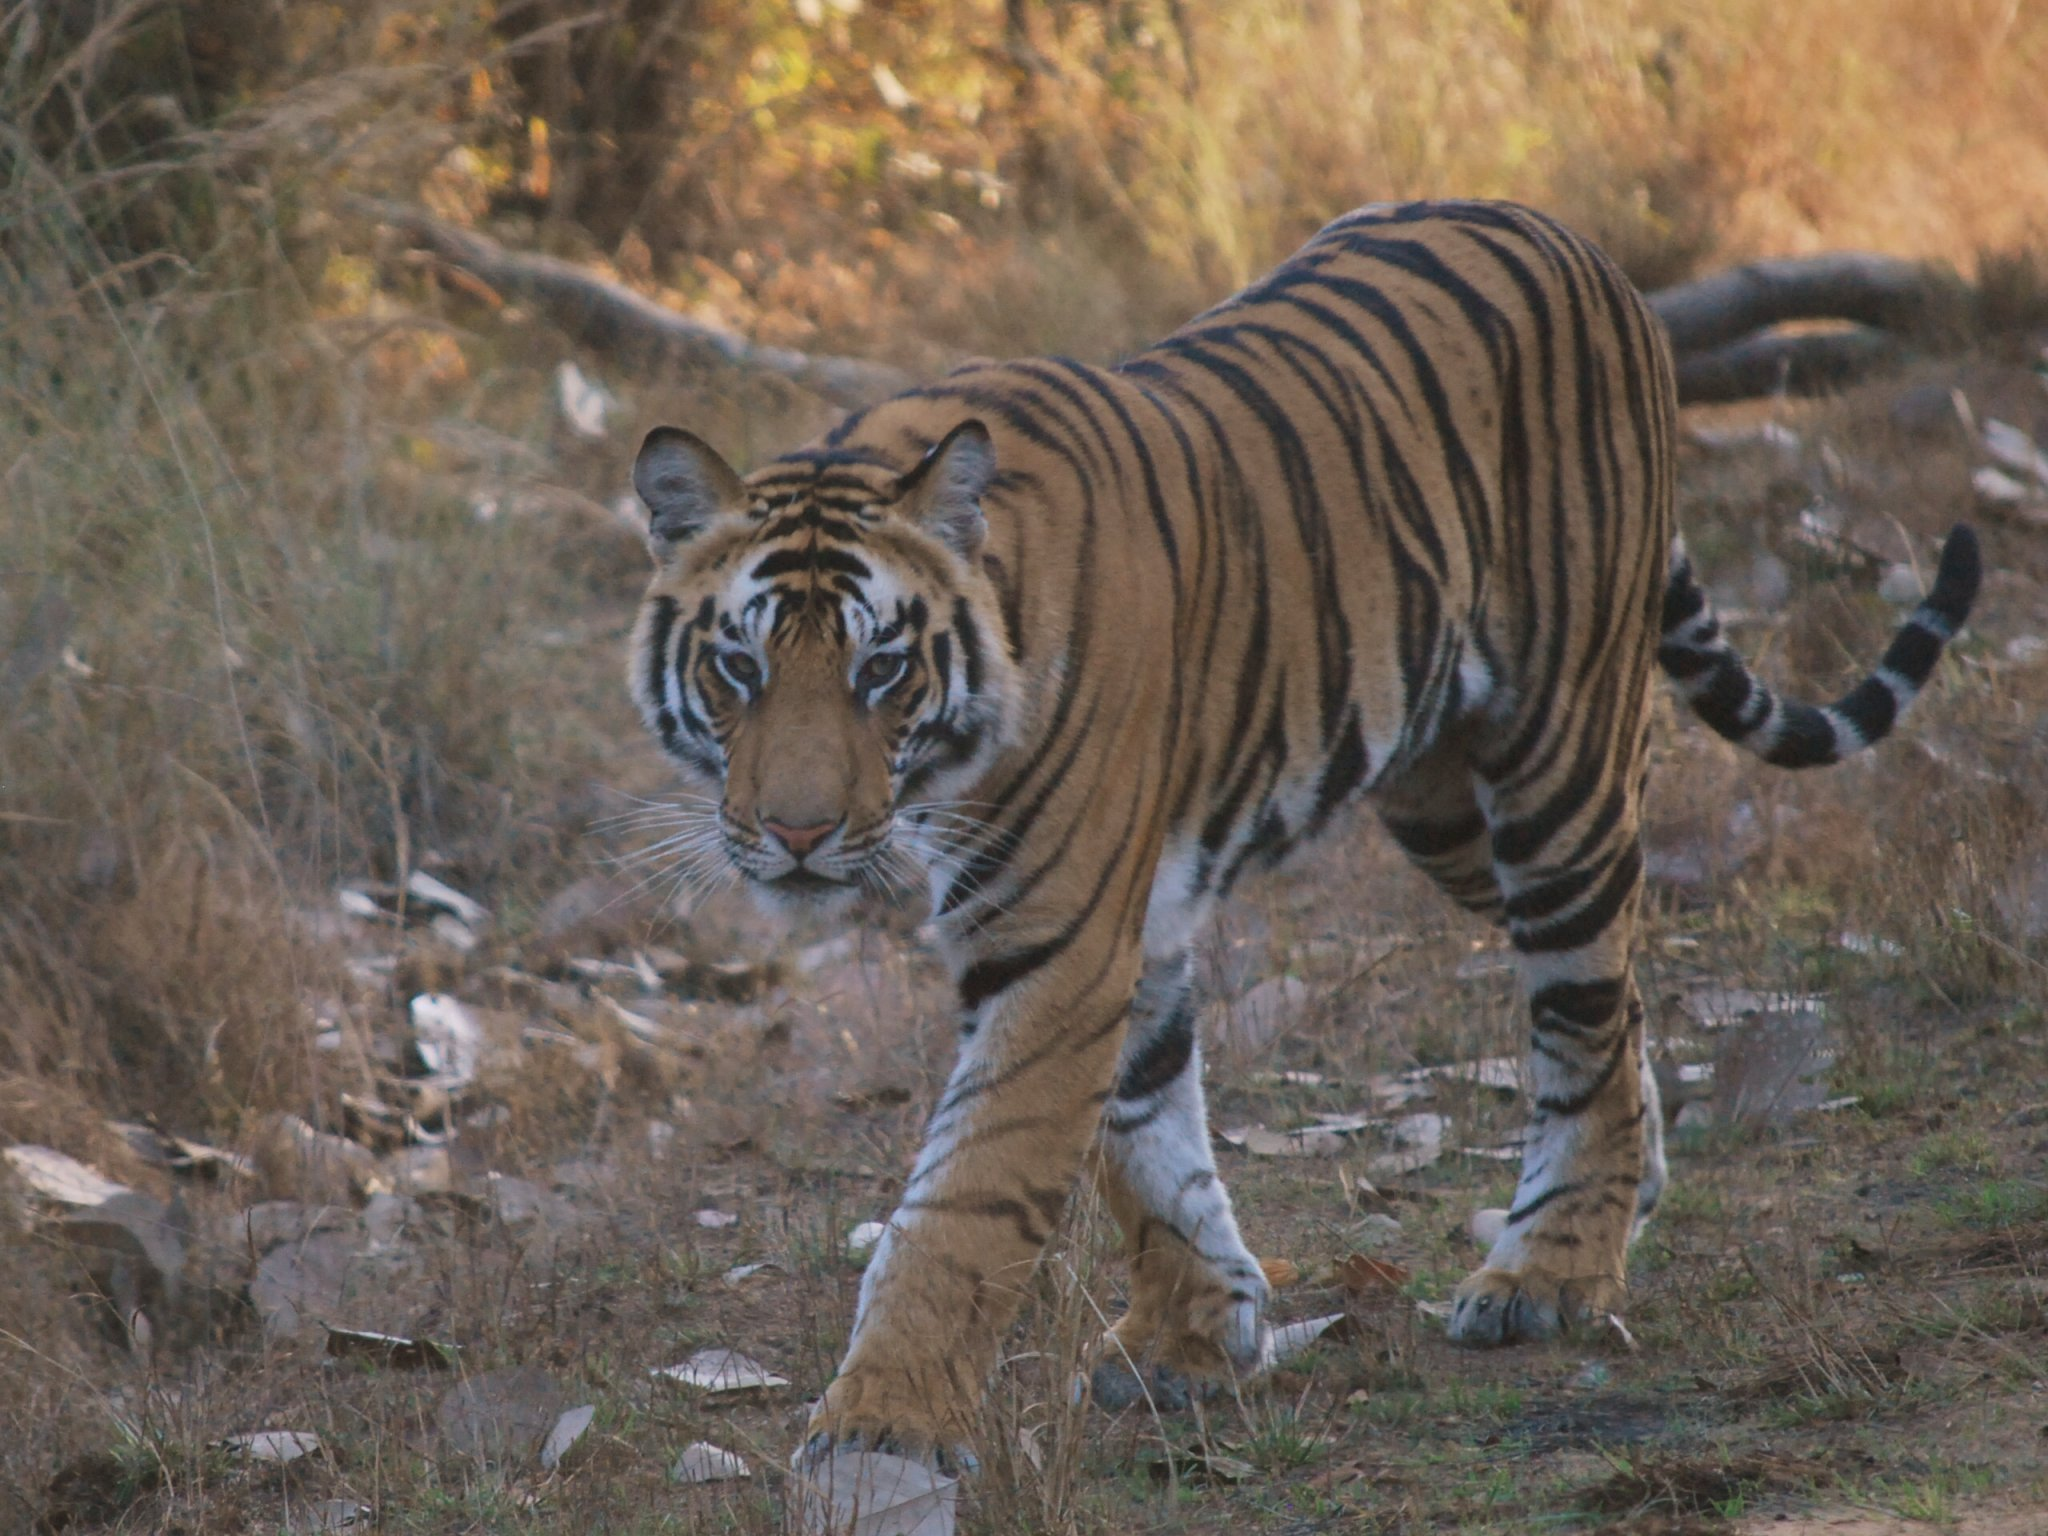 Tiger Bandhavgarh India